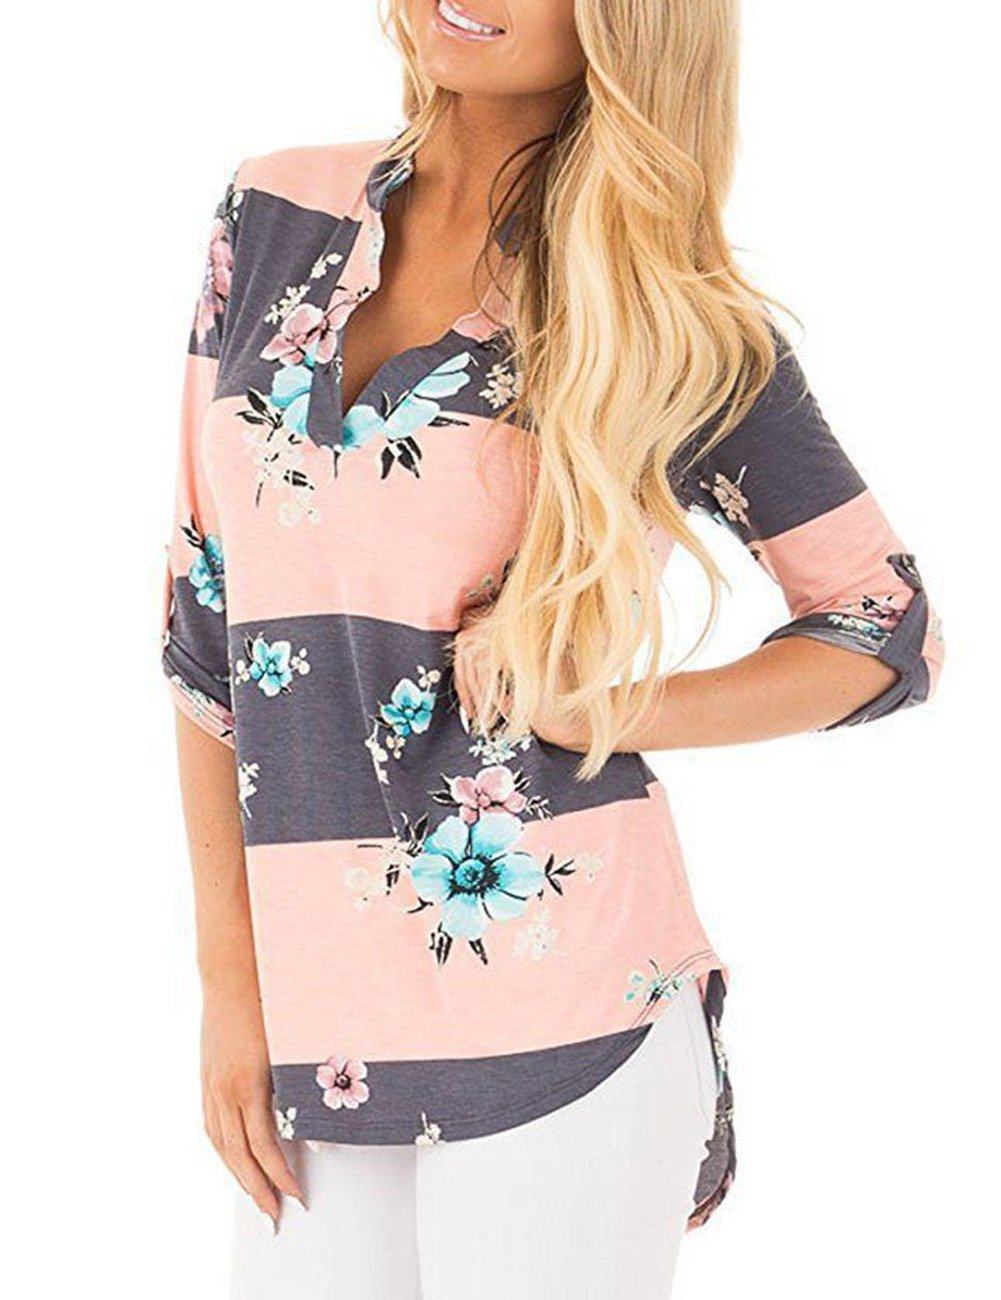 Simaier Women's Shirts V-Neck Shirt 3/4 Sleeve Tops Casual Floral Print JXX0014C